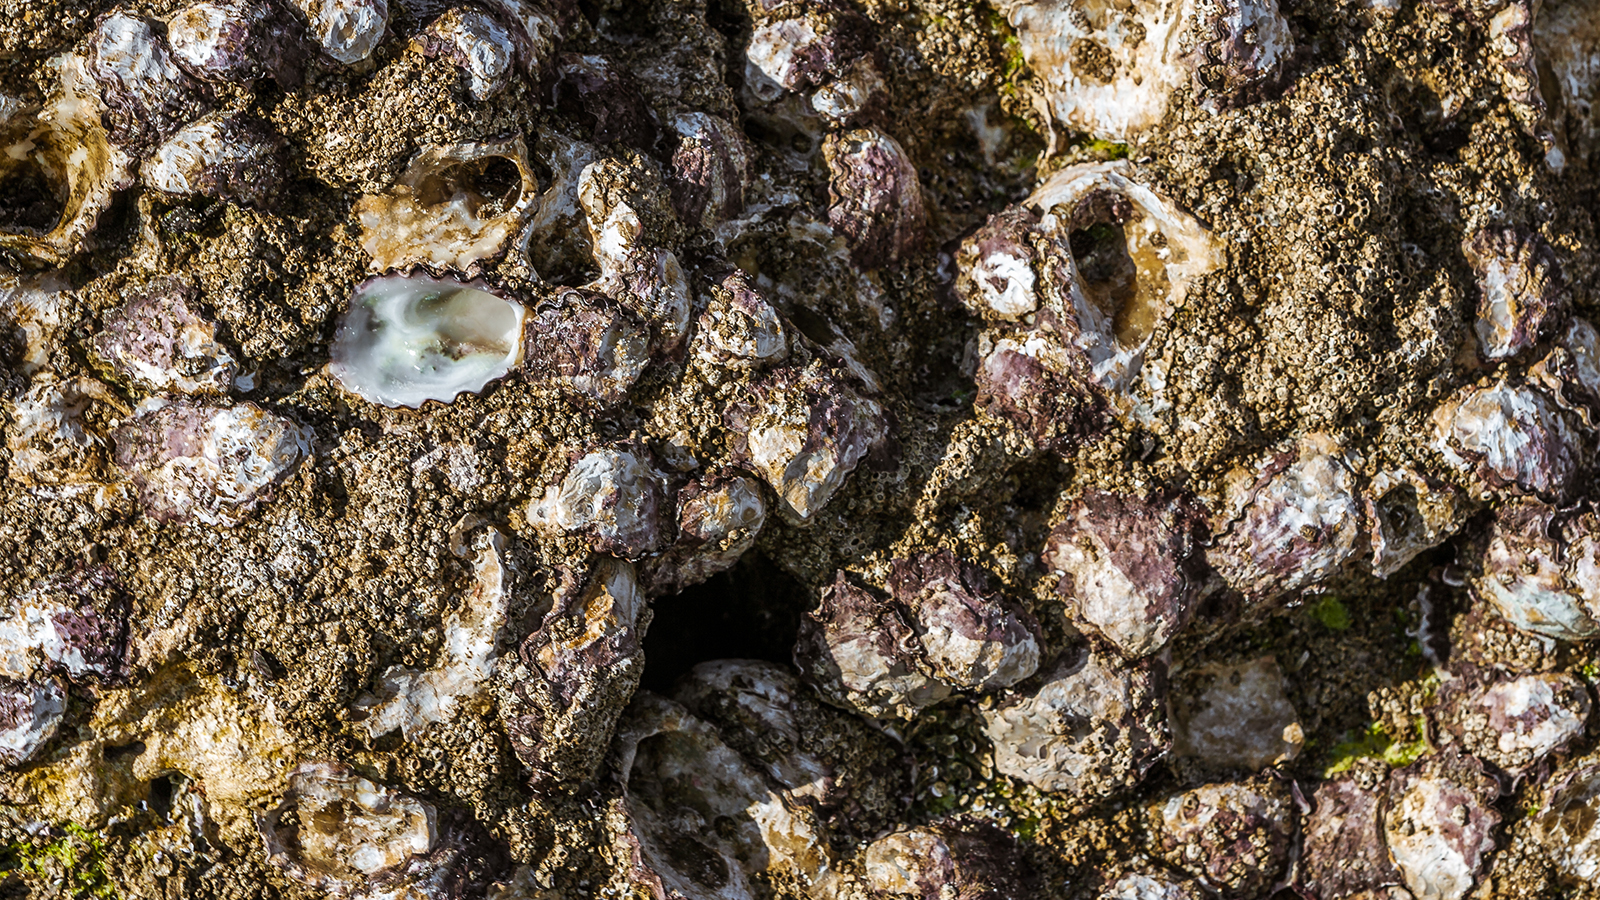 A pile of wild oysters.